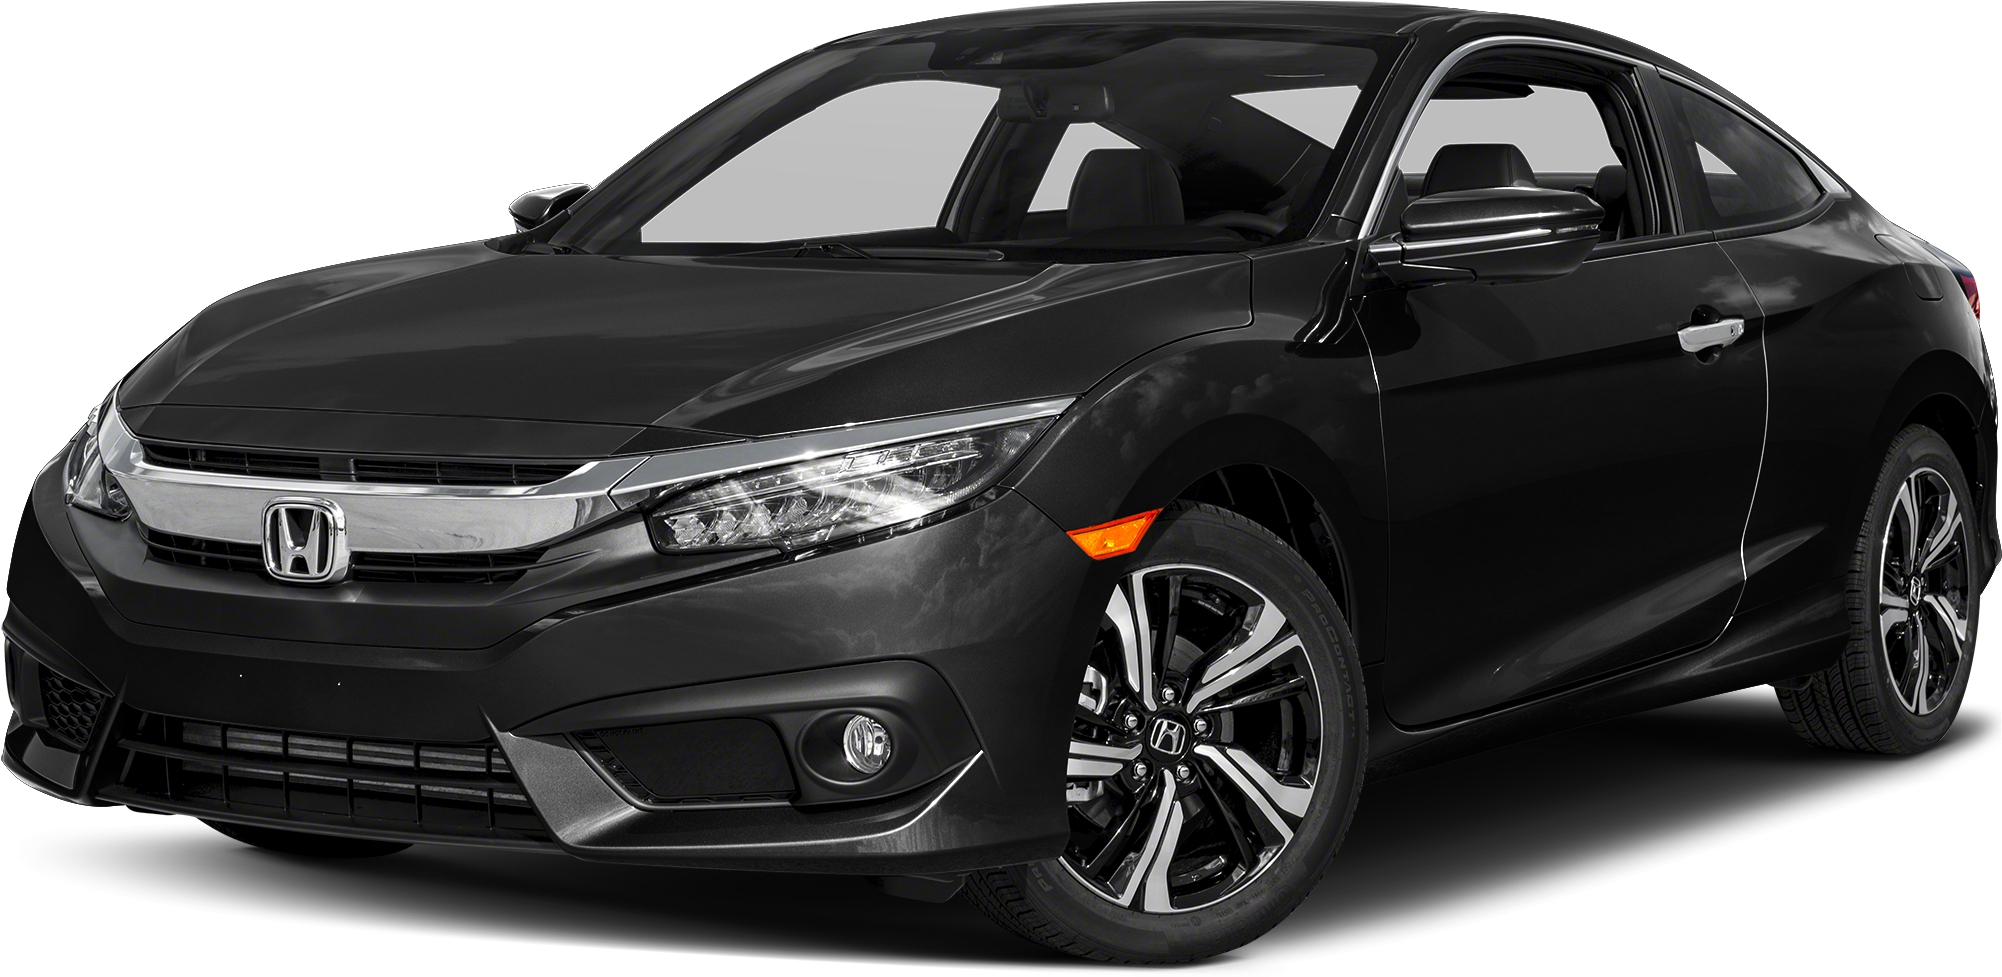 2016 2017 honda civic prices msrp invoice holdback for 2017 honda civic hatchback msrp